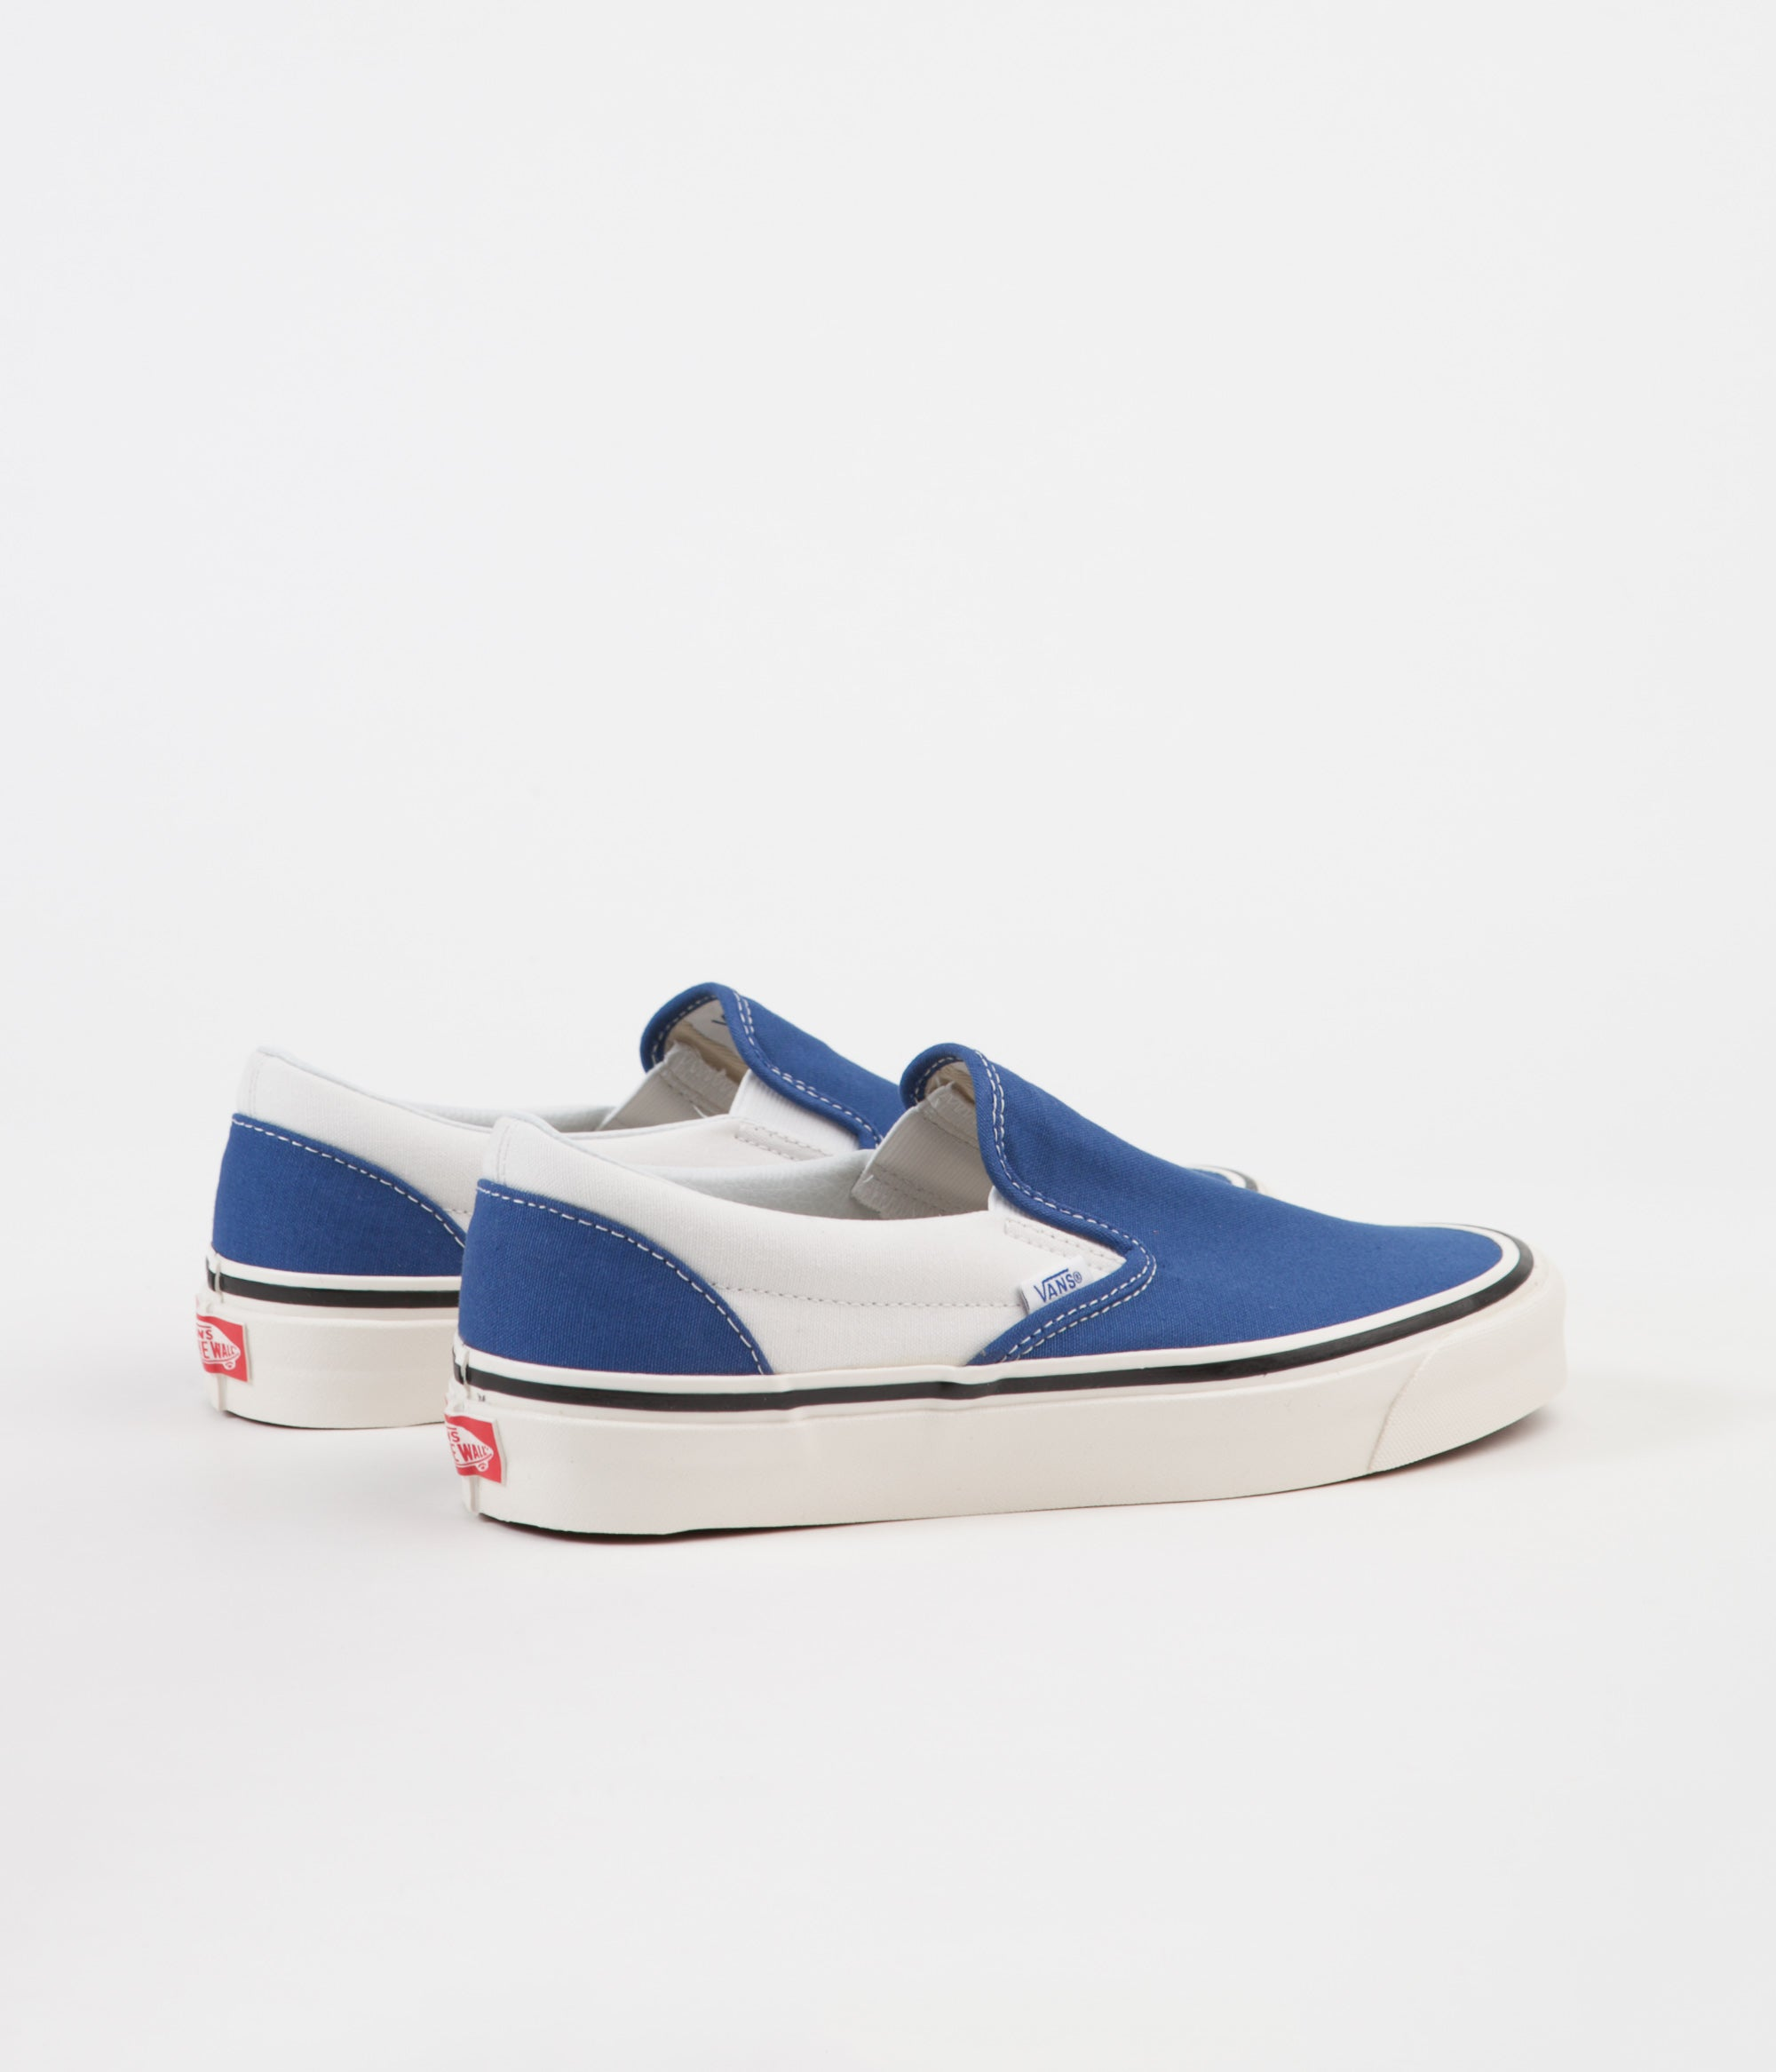 4df06be1590 ... Vans Classic Slip-On 98 DX Anaheim Factory Shoes - OG Blue   White ...